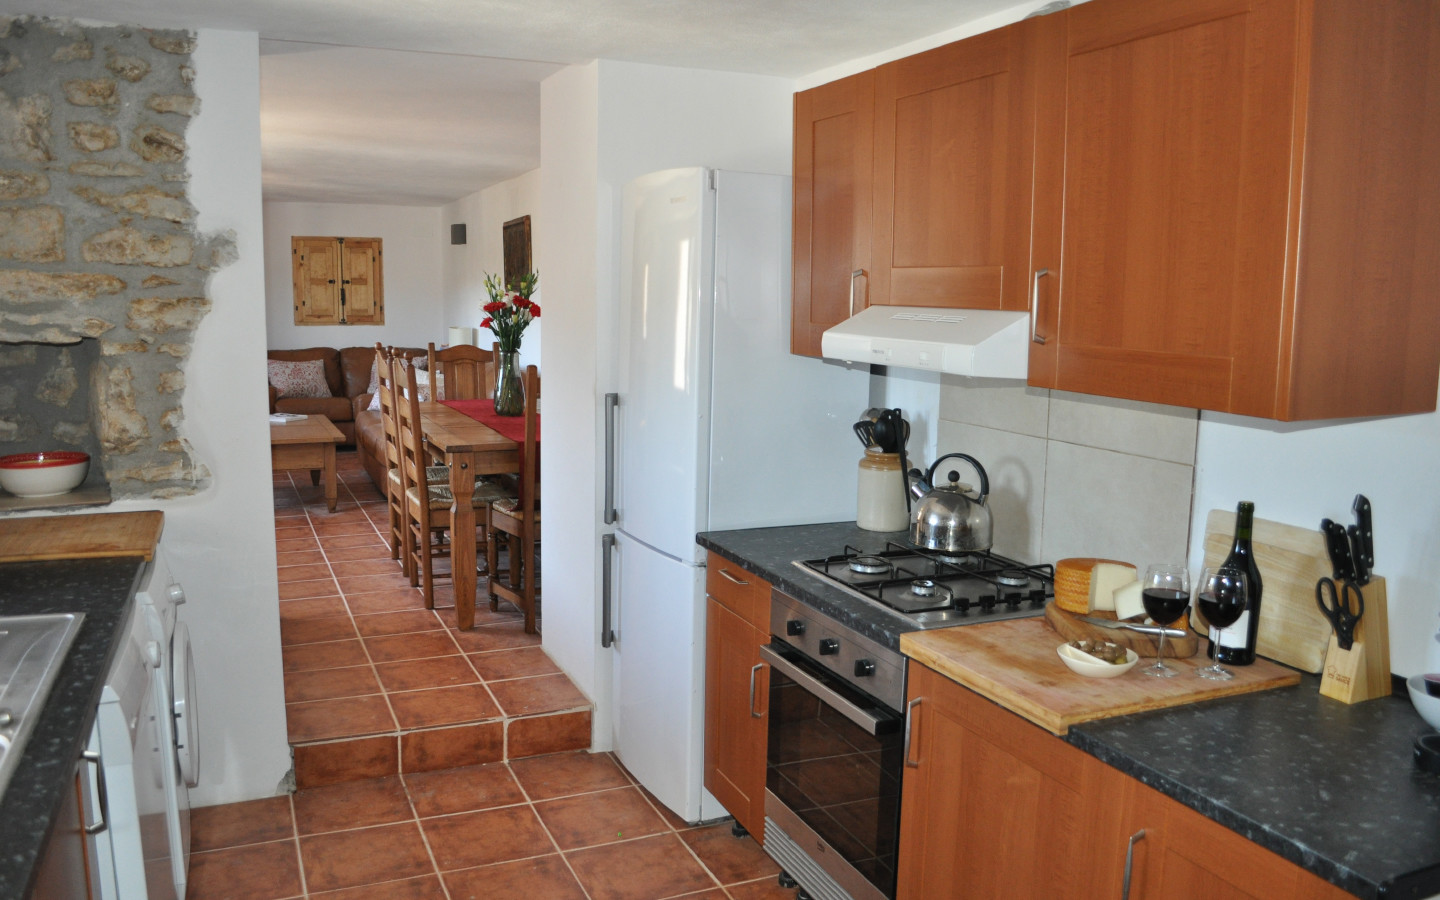 kitchen_huerta_pequena_self catering_holiday_accommodation_Montefrio_www.rural-andalucia.com